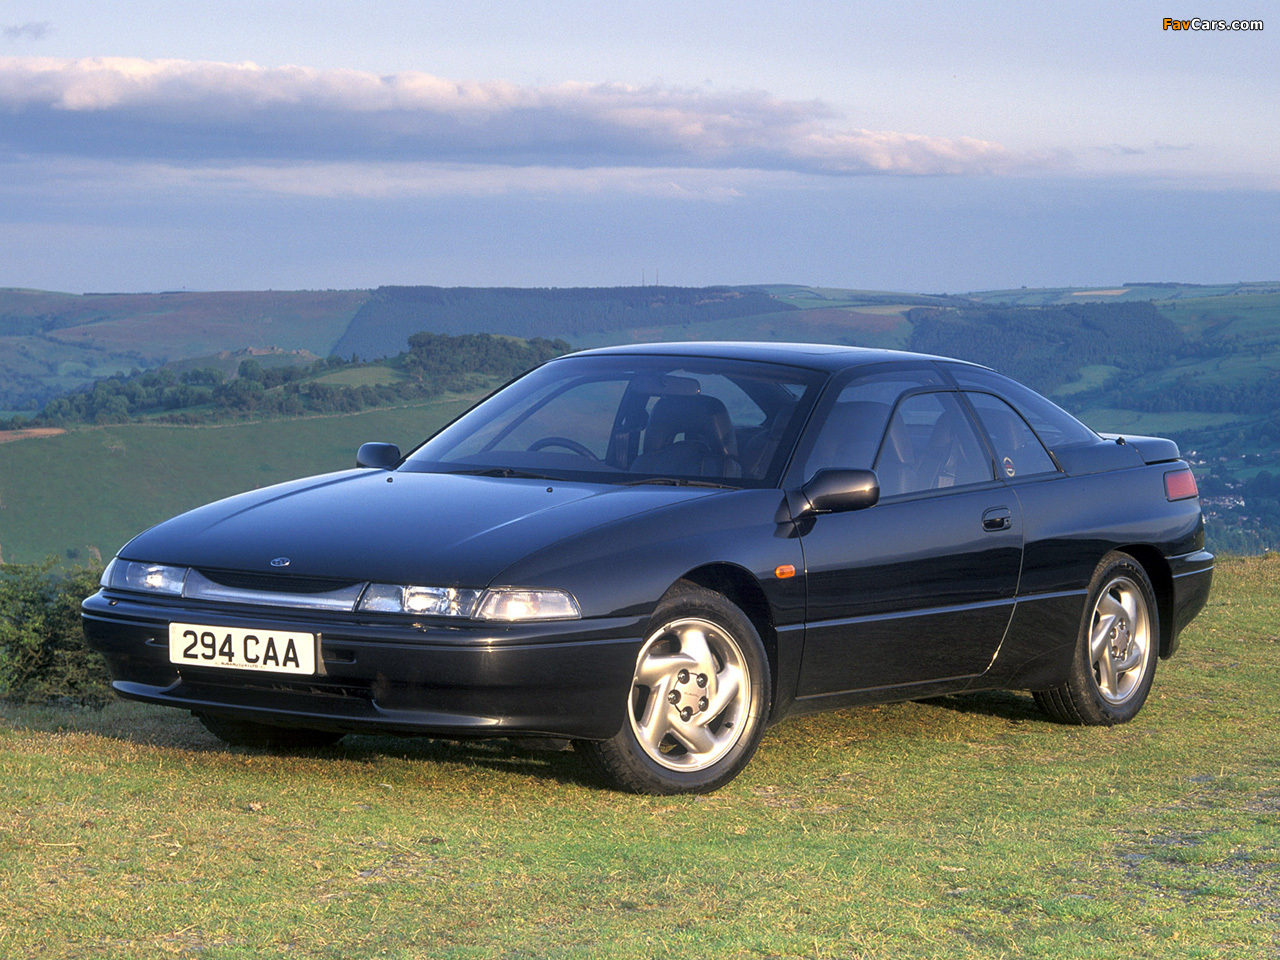 Subaru alcyone svx appreciation page the svxs aerodynamic shape allowed it to maintain the low drag coefficient of cd029 previously established by the xt coupe it replaced vanachro Images